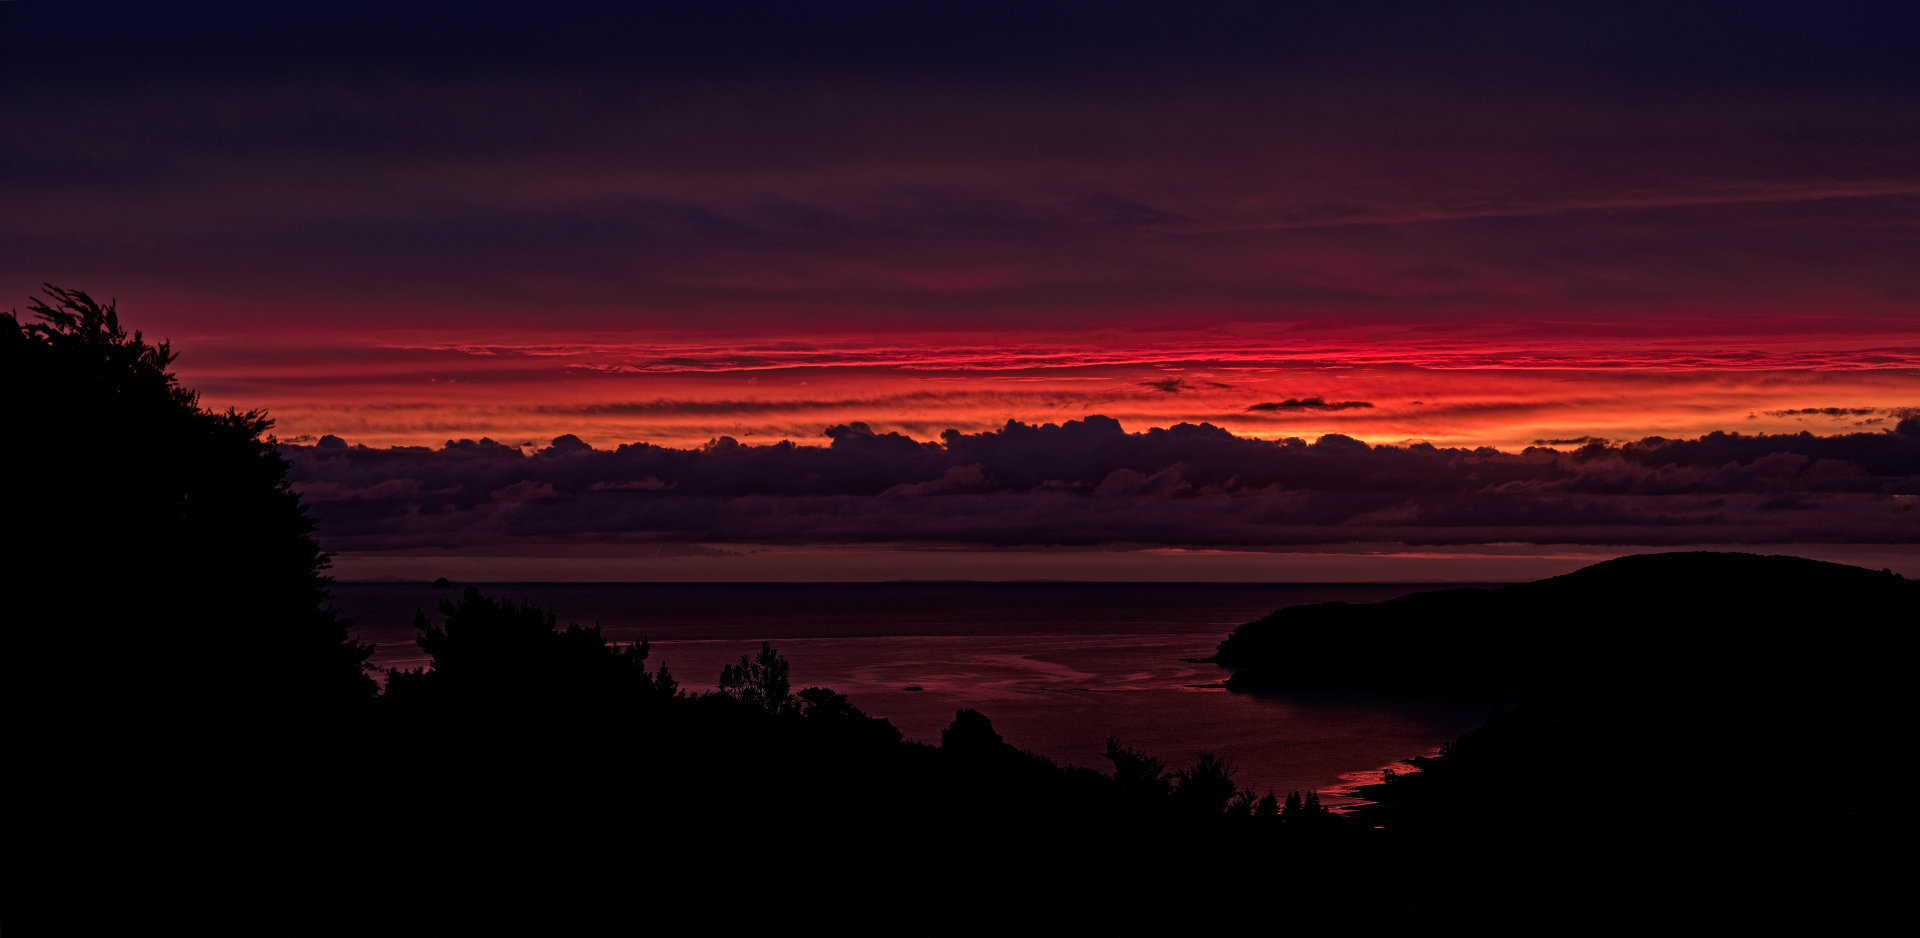 A very colourful sunset. Great-Barrier-Island-New-Zealand-Nov.17-20.05-f16-1/160s-iso800-100mm-300dpi-max.-res.-14576x7121-px